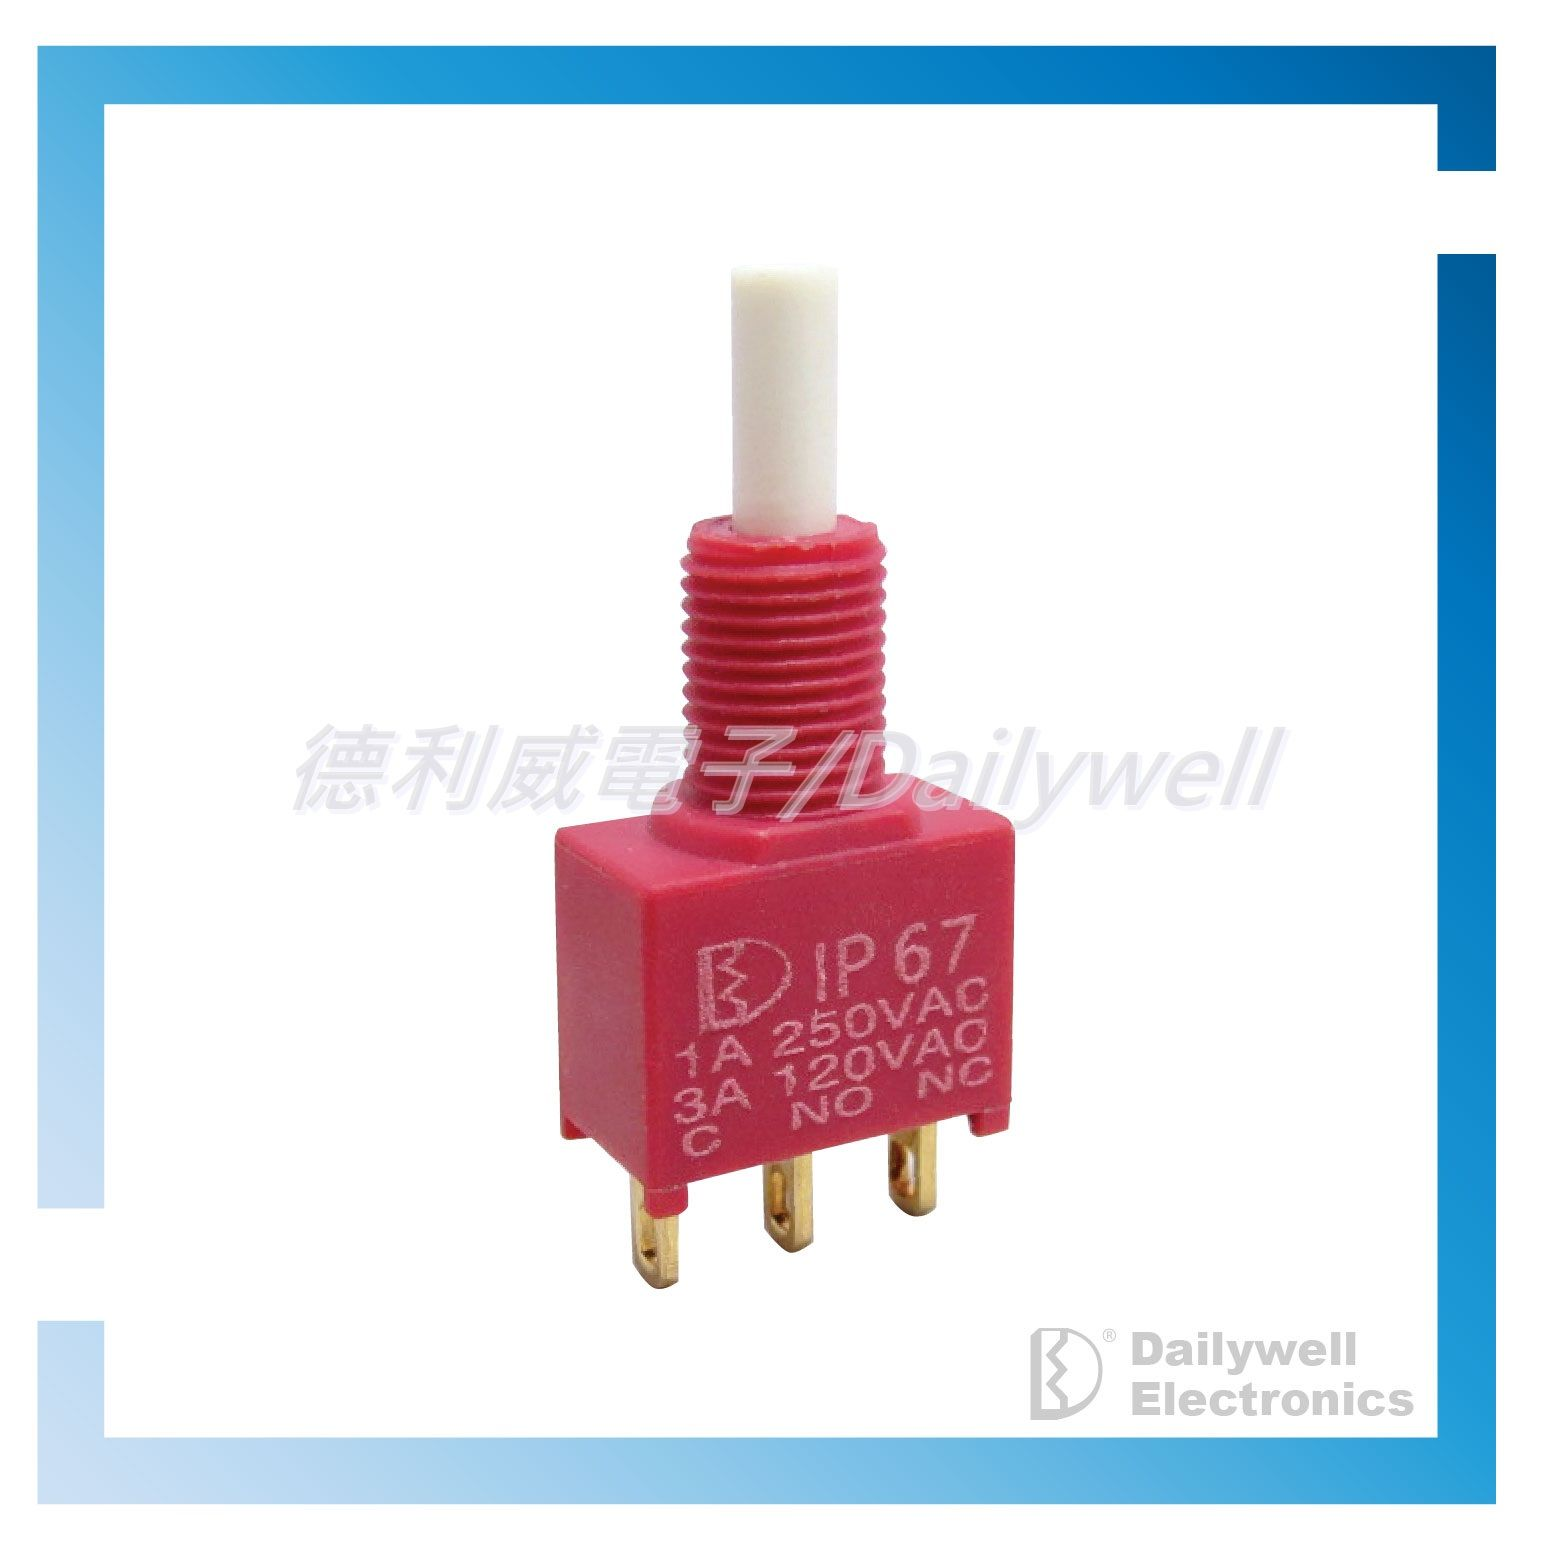 Sealed Snap-Acting Pushbutton Switches